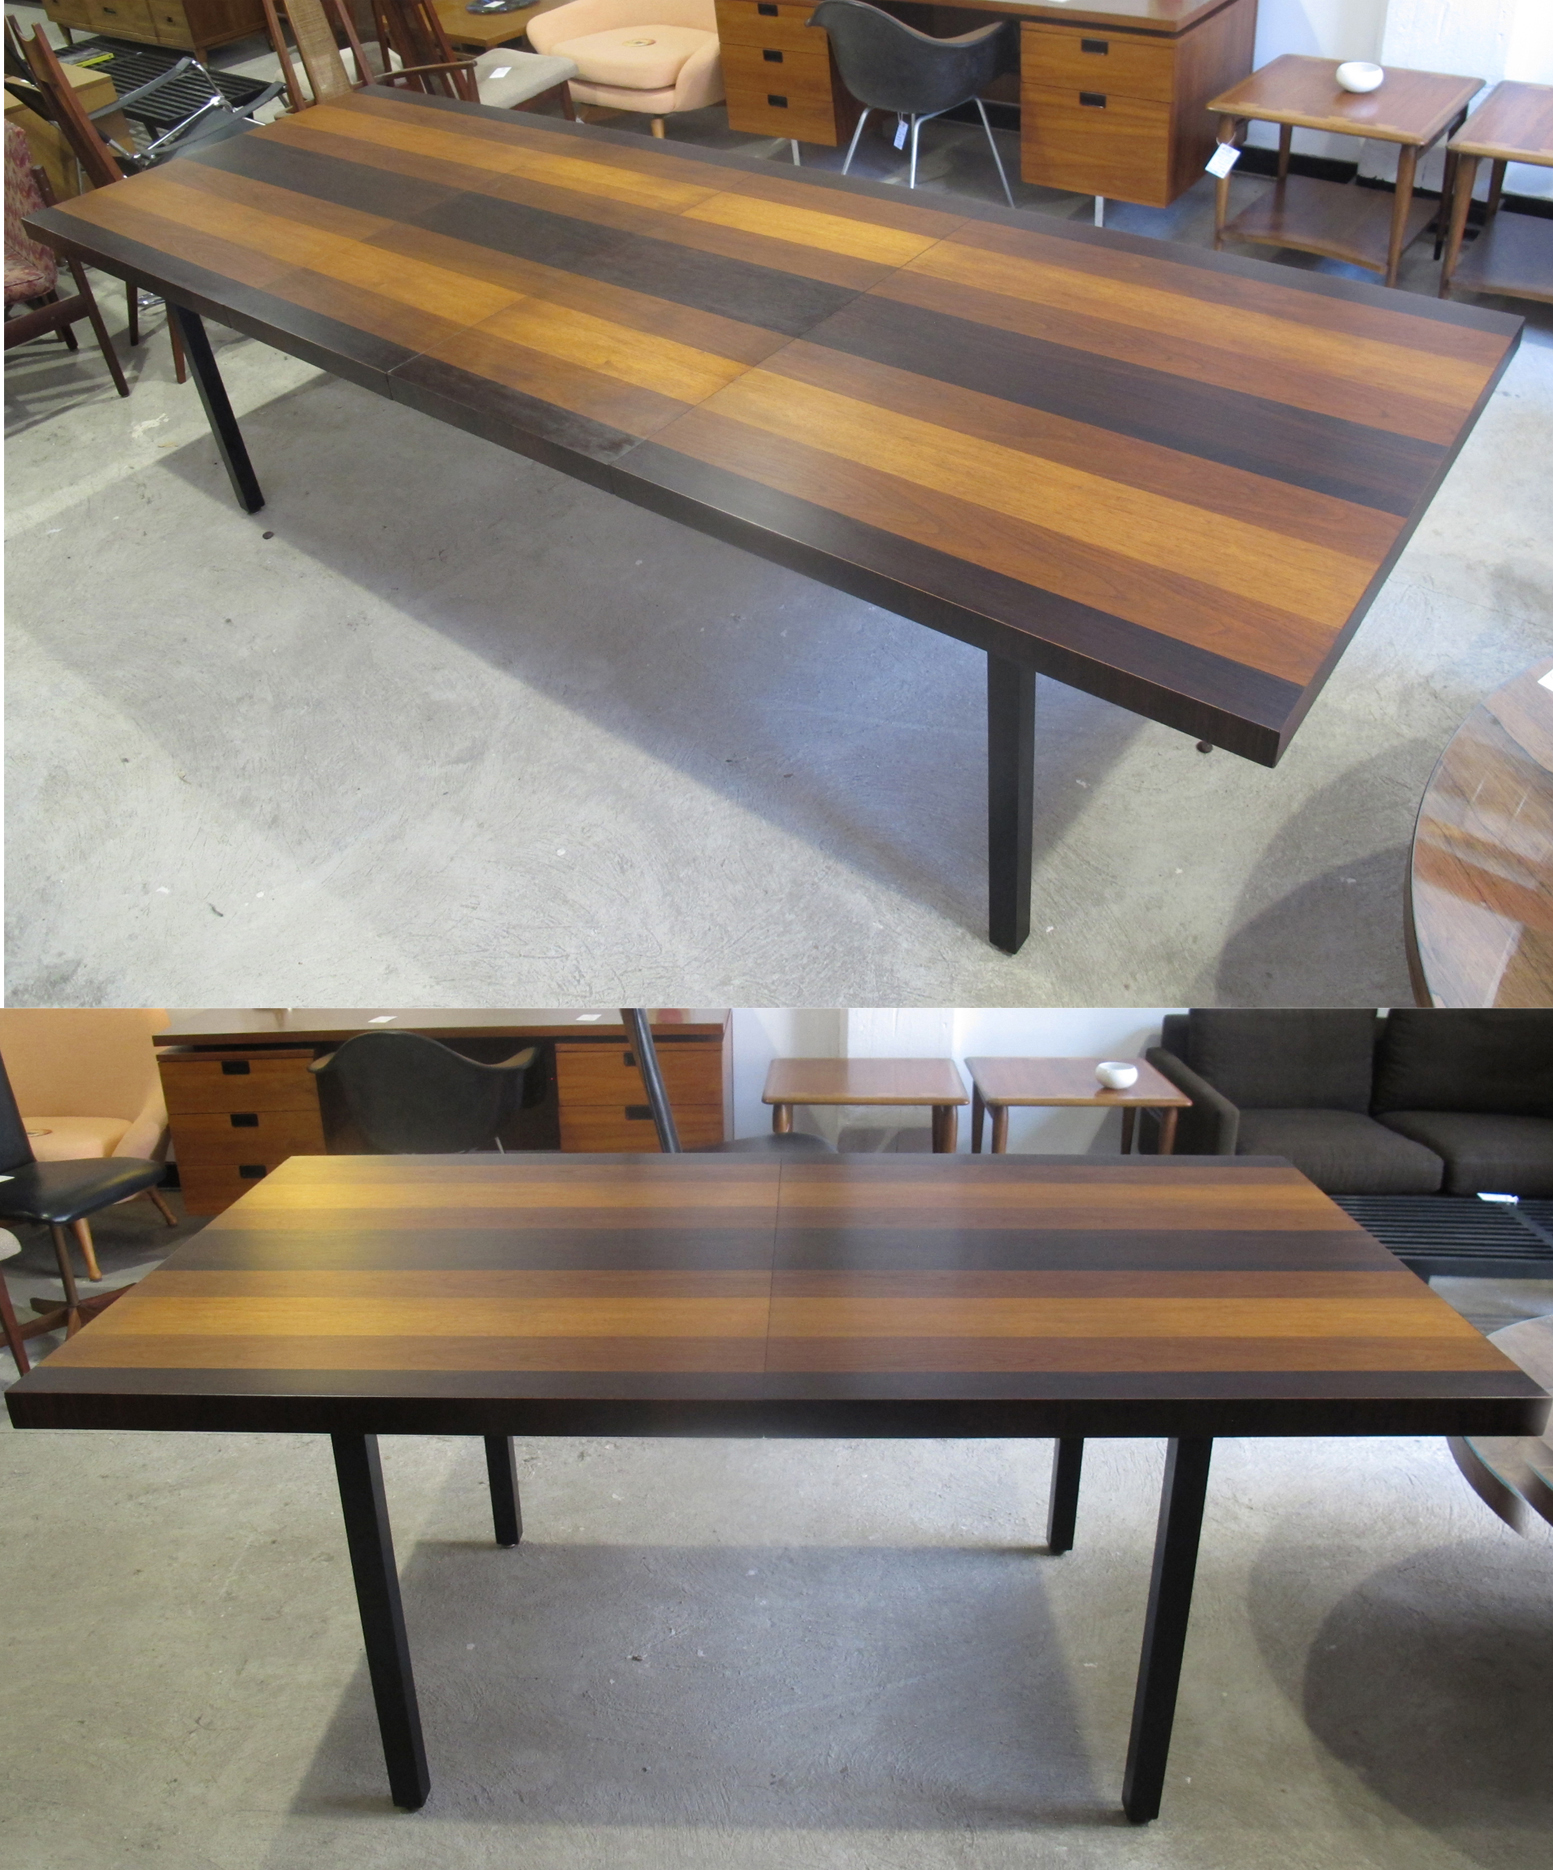 MILO BAUGHMAN MIXED WOOD DINING TABLE BY DIRECTIONAL